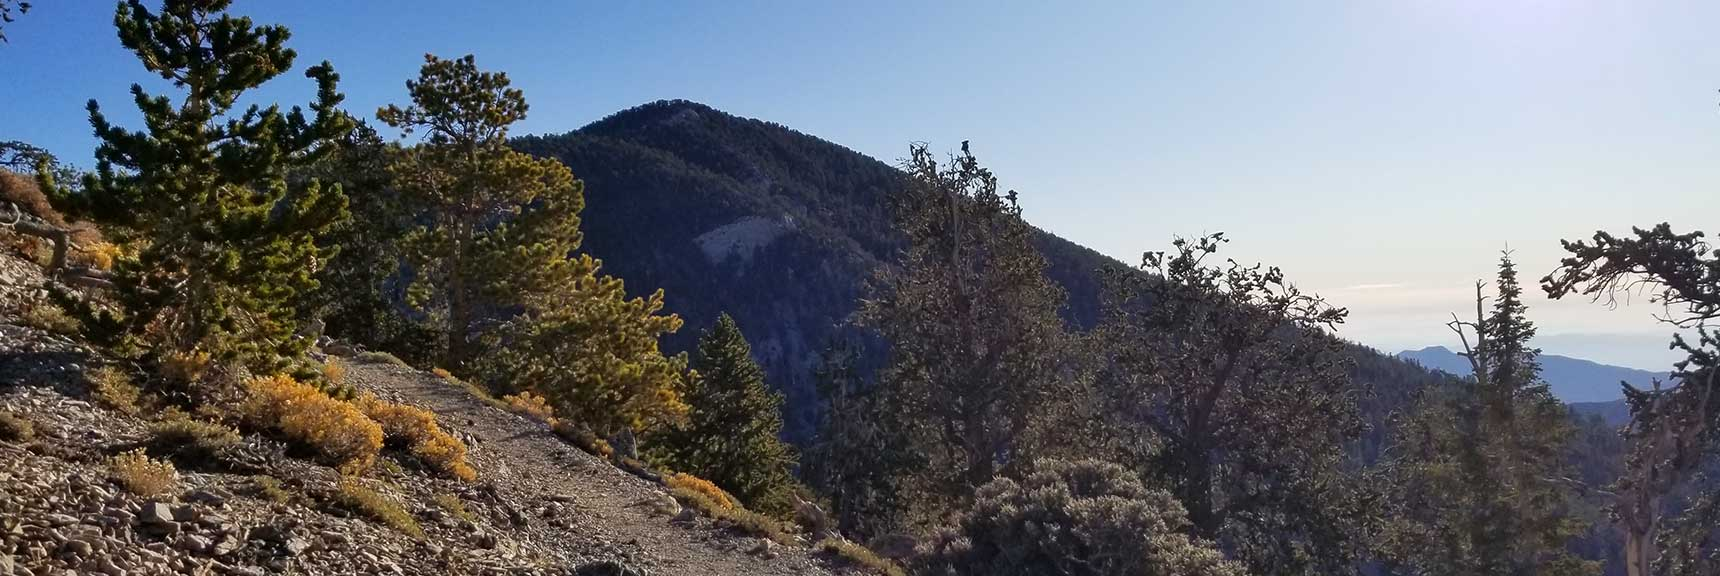 Fletcher Peak Viewed from the North Loop Trail on the Way to Mummy Mountain, Nevada via the Northeast Approach